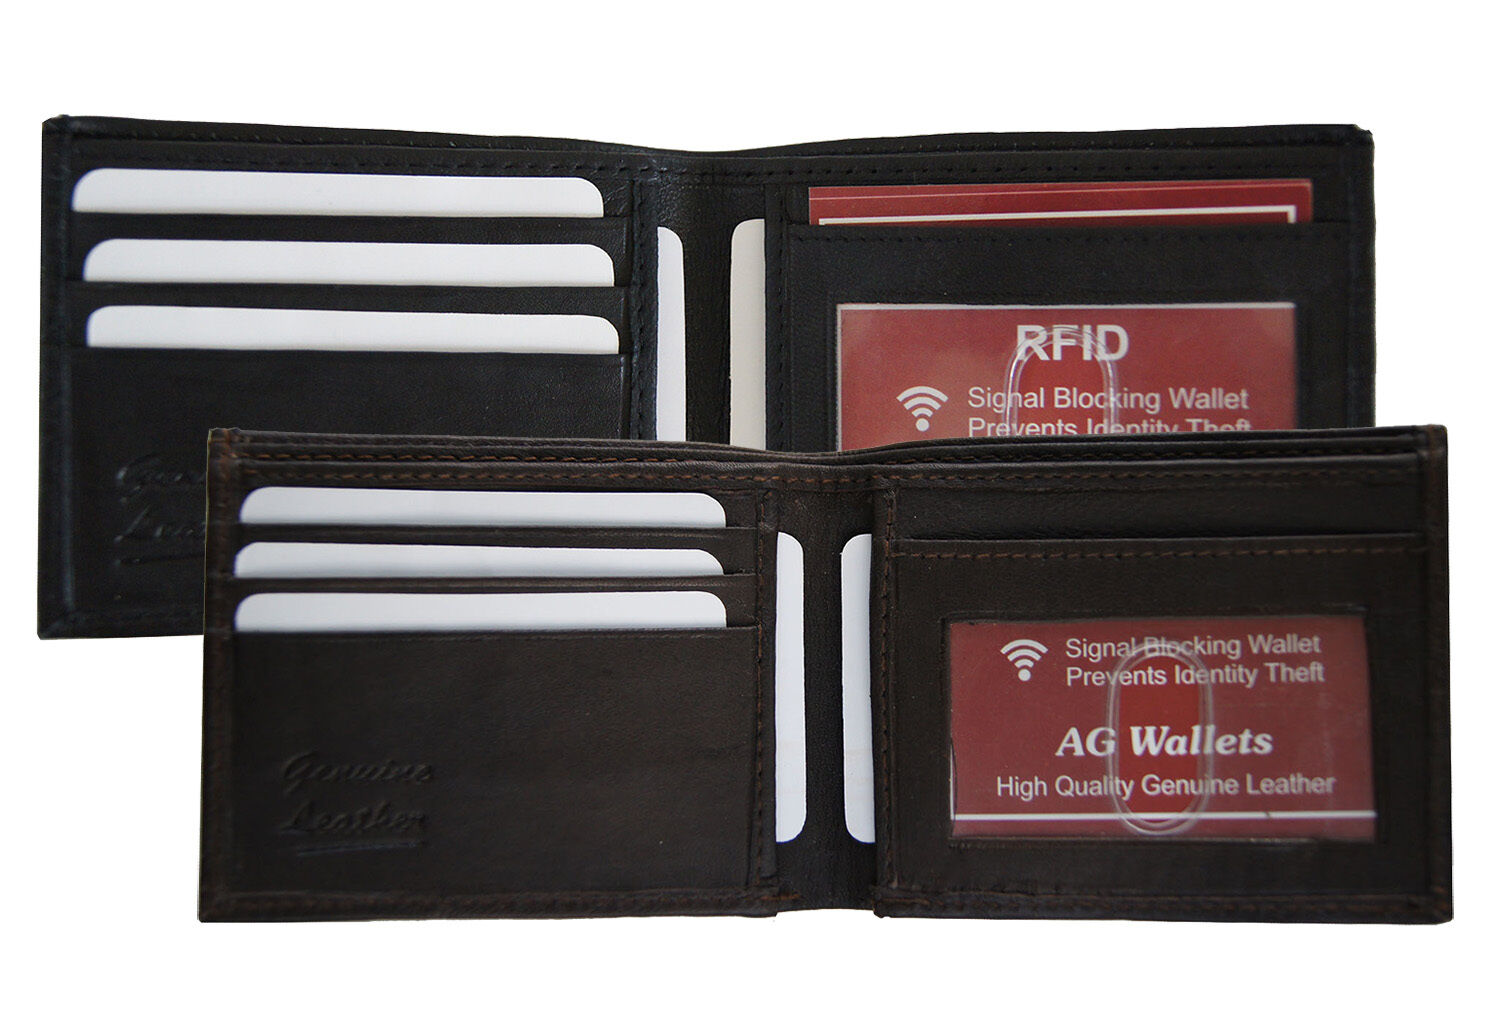 2 RFID NFC Signal Blocking Wallet Insert Cards I Credit Debit Social Security Card Data Blockers /& Free Identity Theft Passport Protector Incl